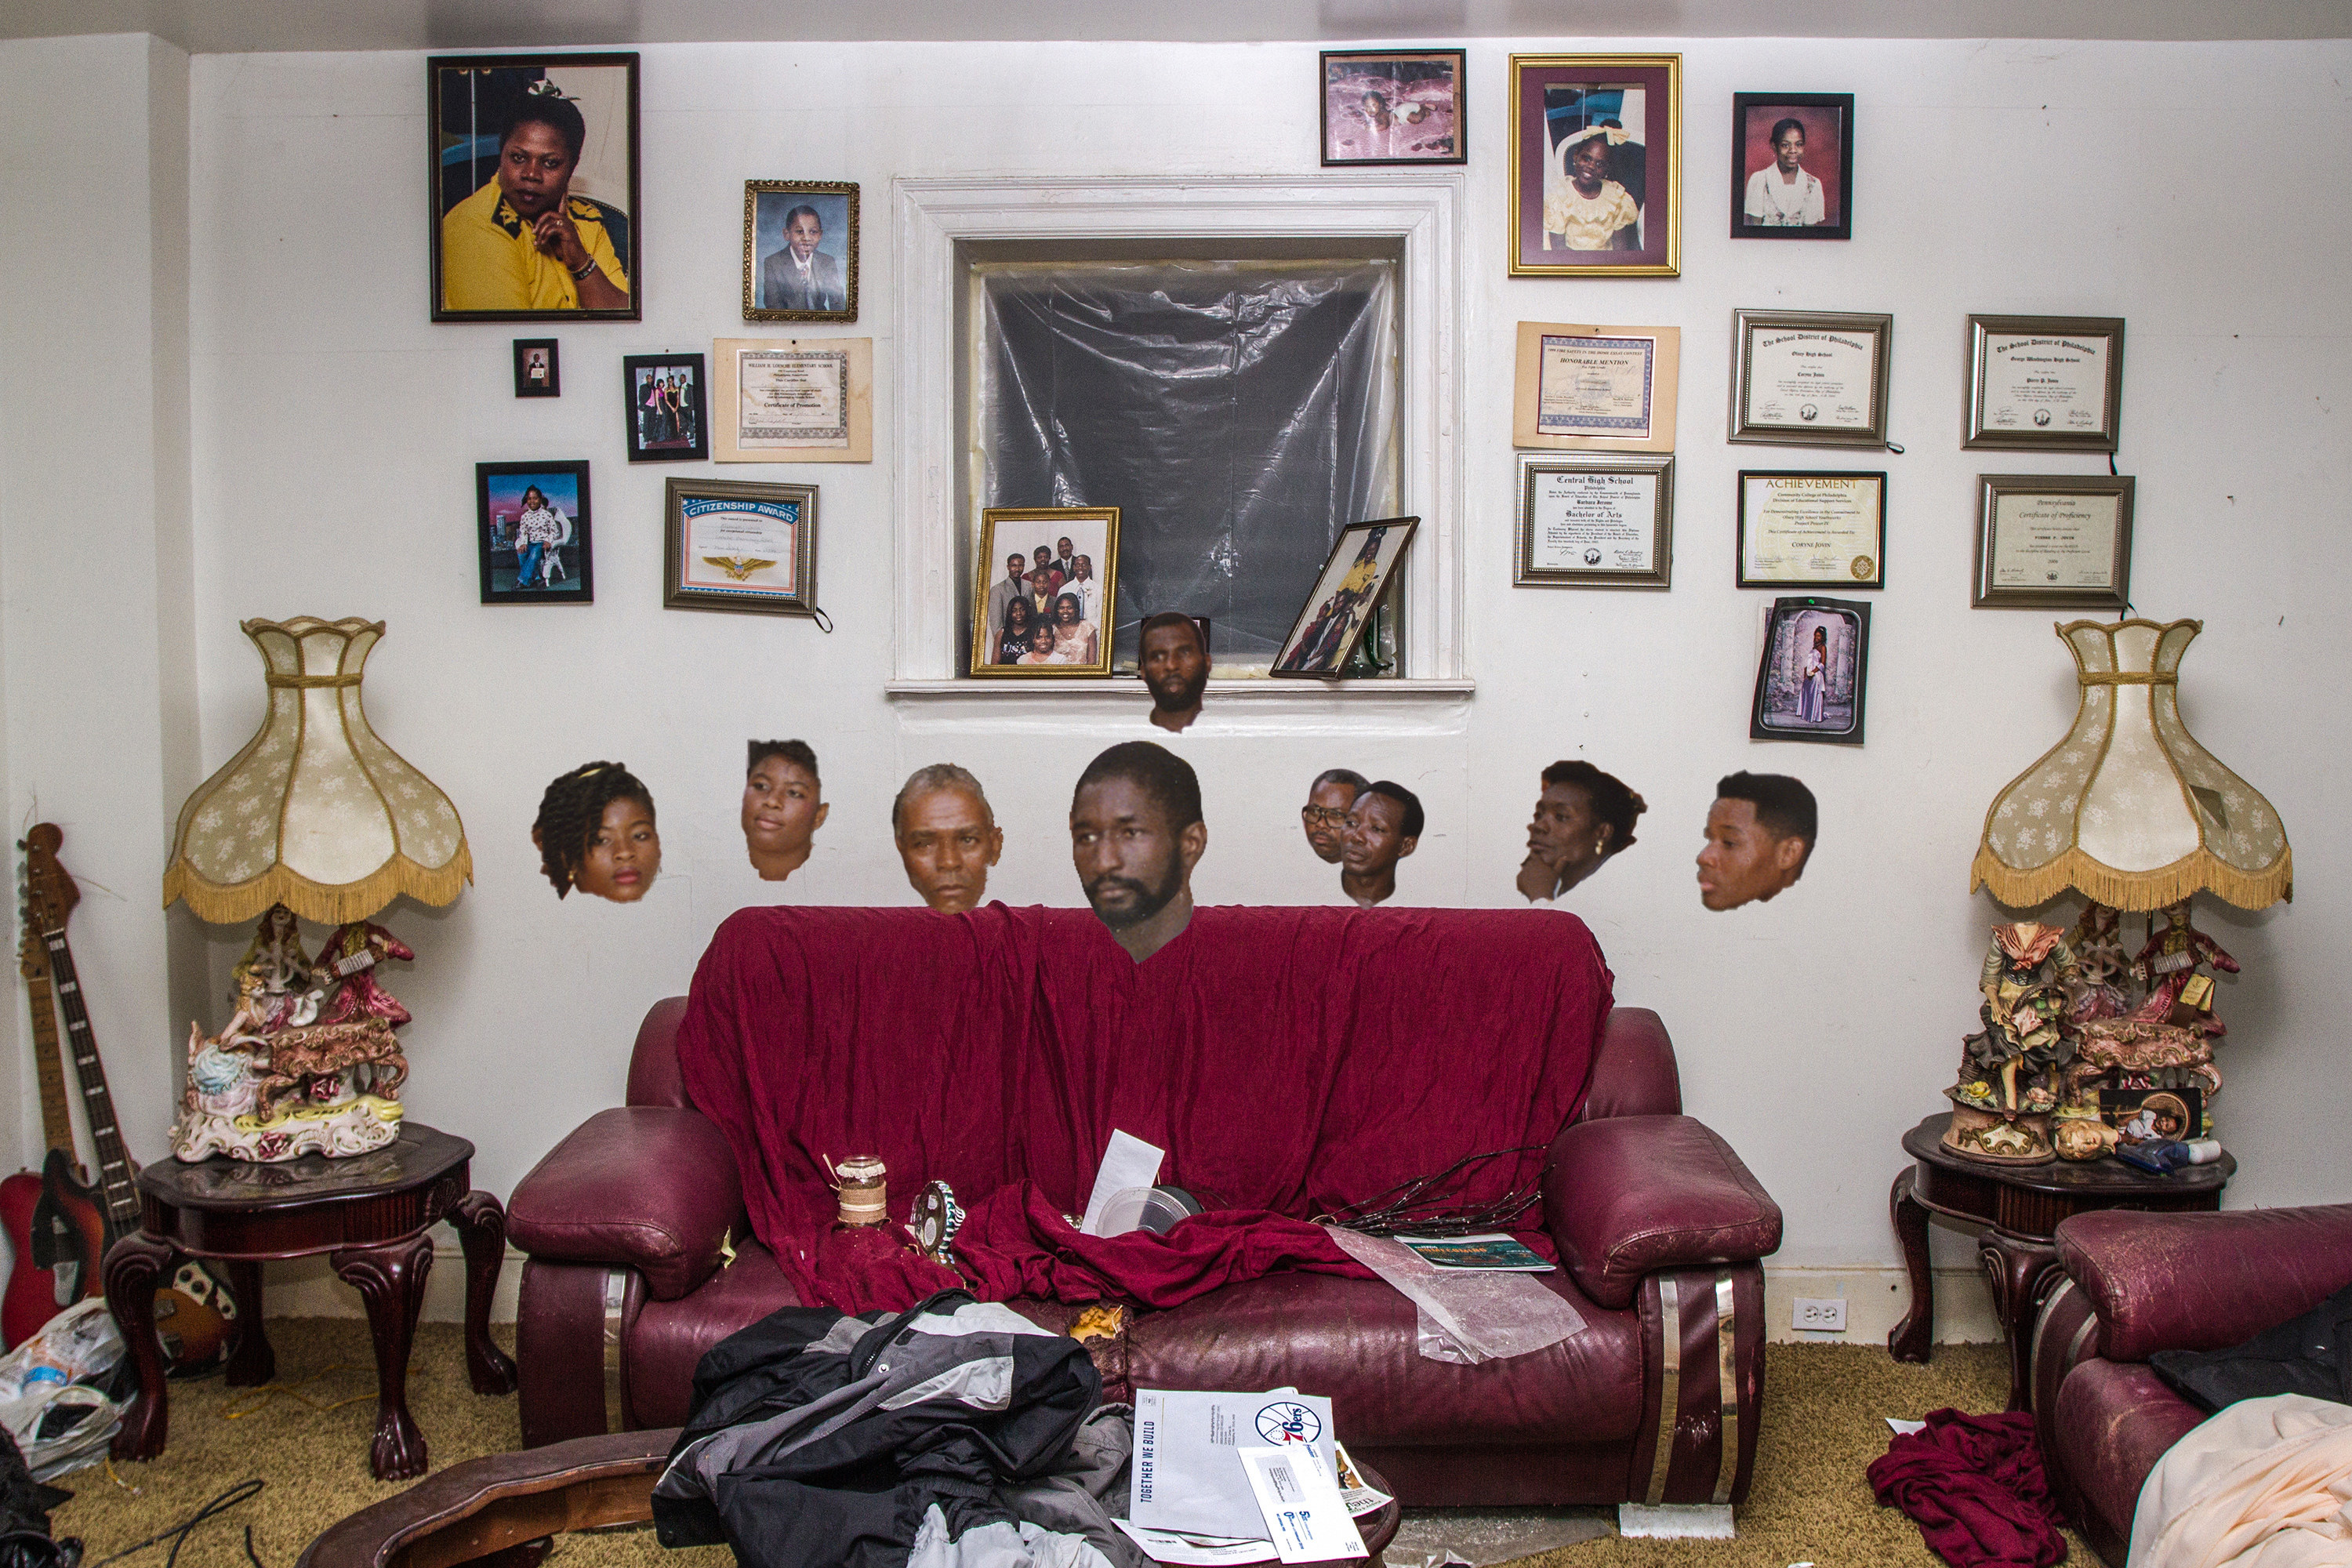 A collage of heads with no bodies hovering over a couch in a living room with pictures on the walls